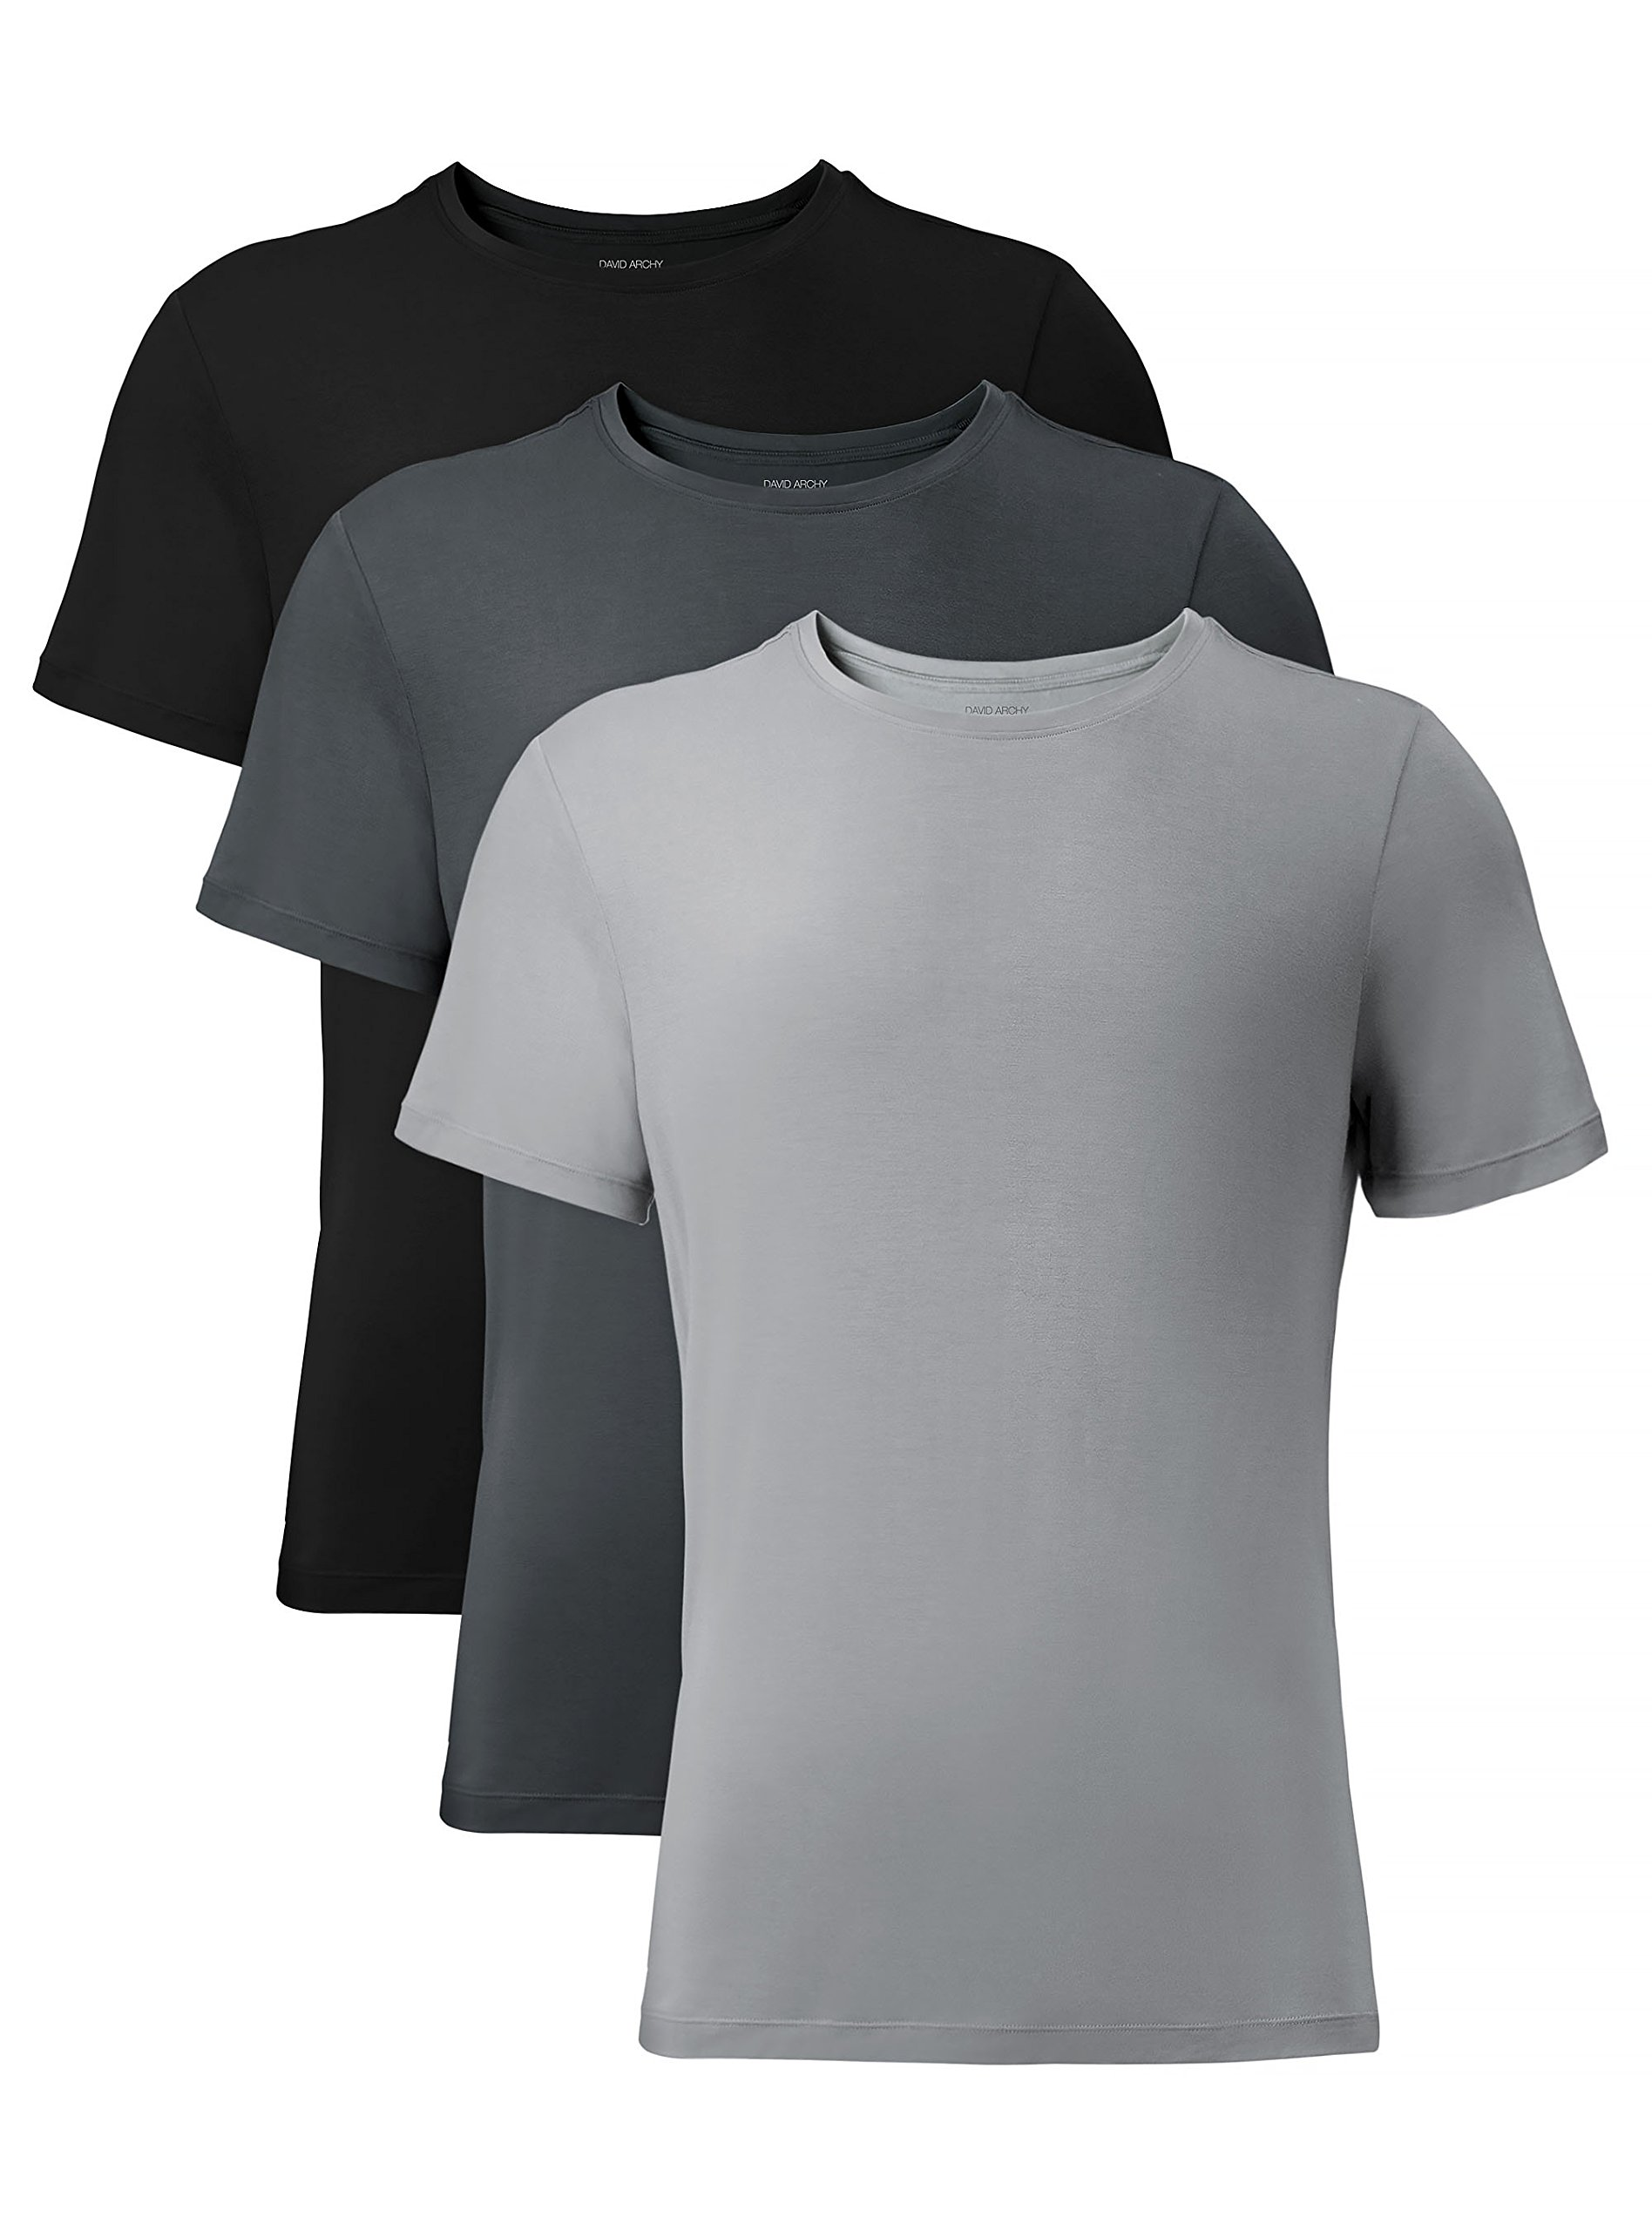 David Archy Men's 3 Pack Soft Comfy Bamboo Rayon Undershirts Breathable Crew Neck Slim Fit Tees Short Sleeve T-Shirts (M, Black/Charcoal/Gray) by David Archy